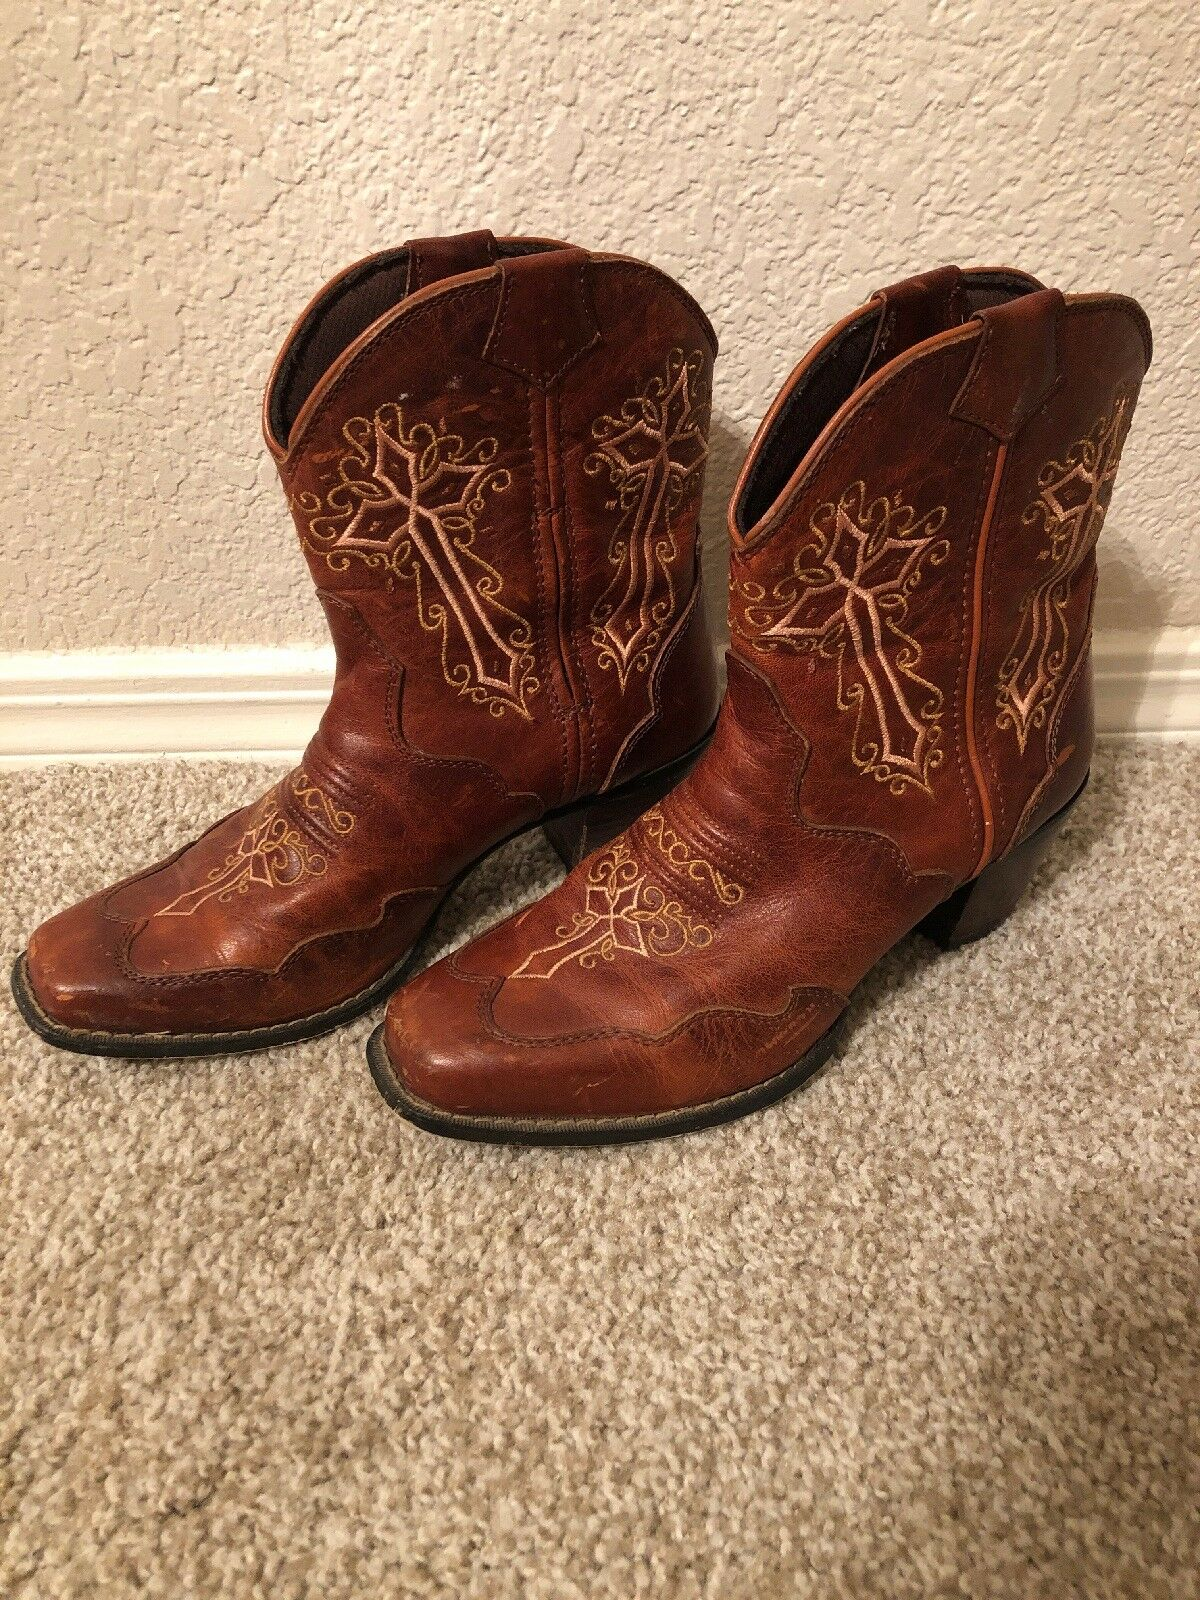 Durango Crush RD3412 Size 7M Womens 7  Shorty Cross Leather Boots Brown